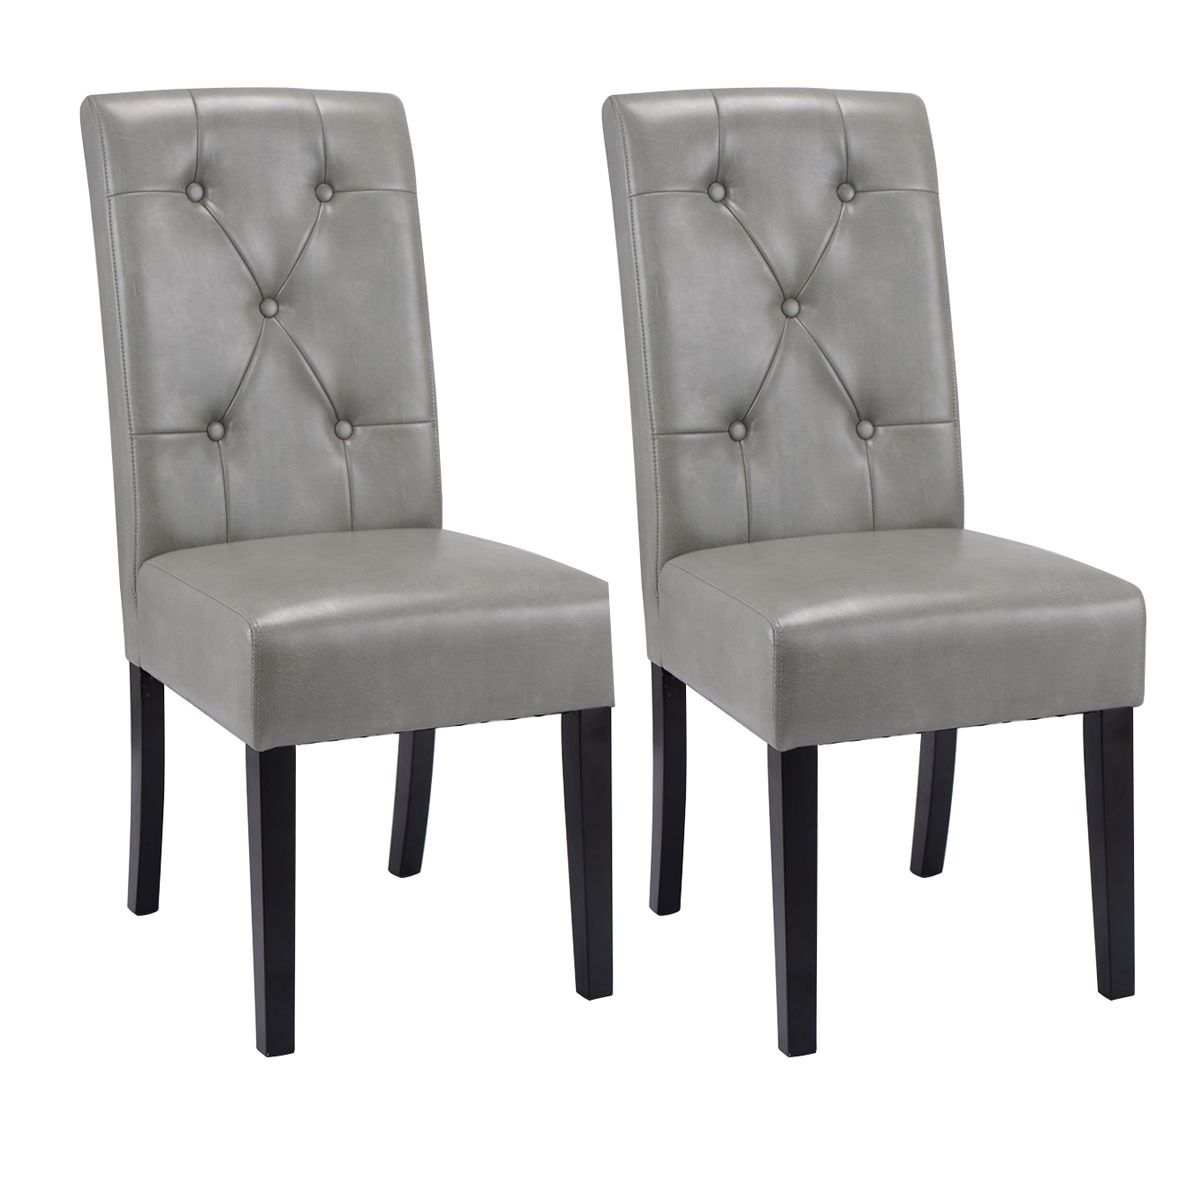 Best Set Of 2 High Back Armless Accent Dining Chairs Dining 400 x 300